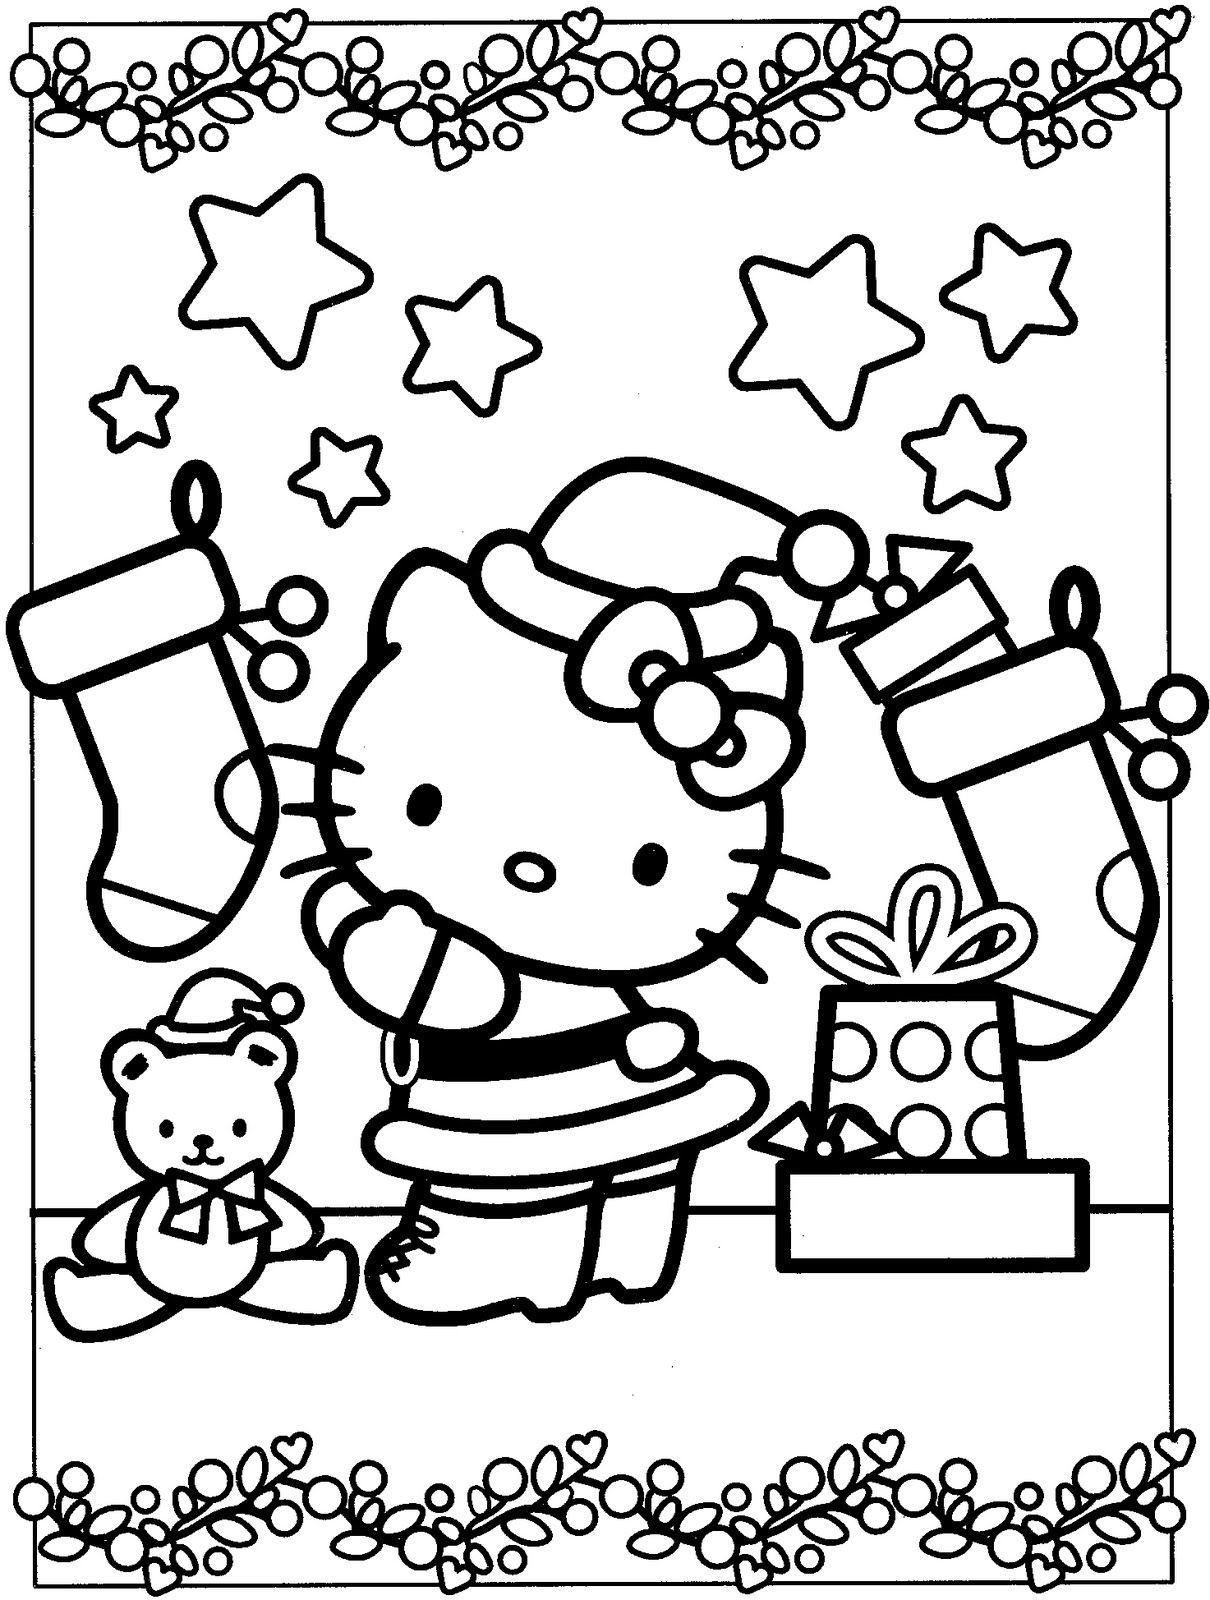 Free christmas coloring pages lots of beautiful christmas coloring pages and printables for kids kidspartyworks com